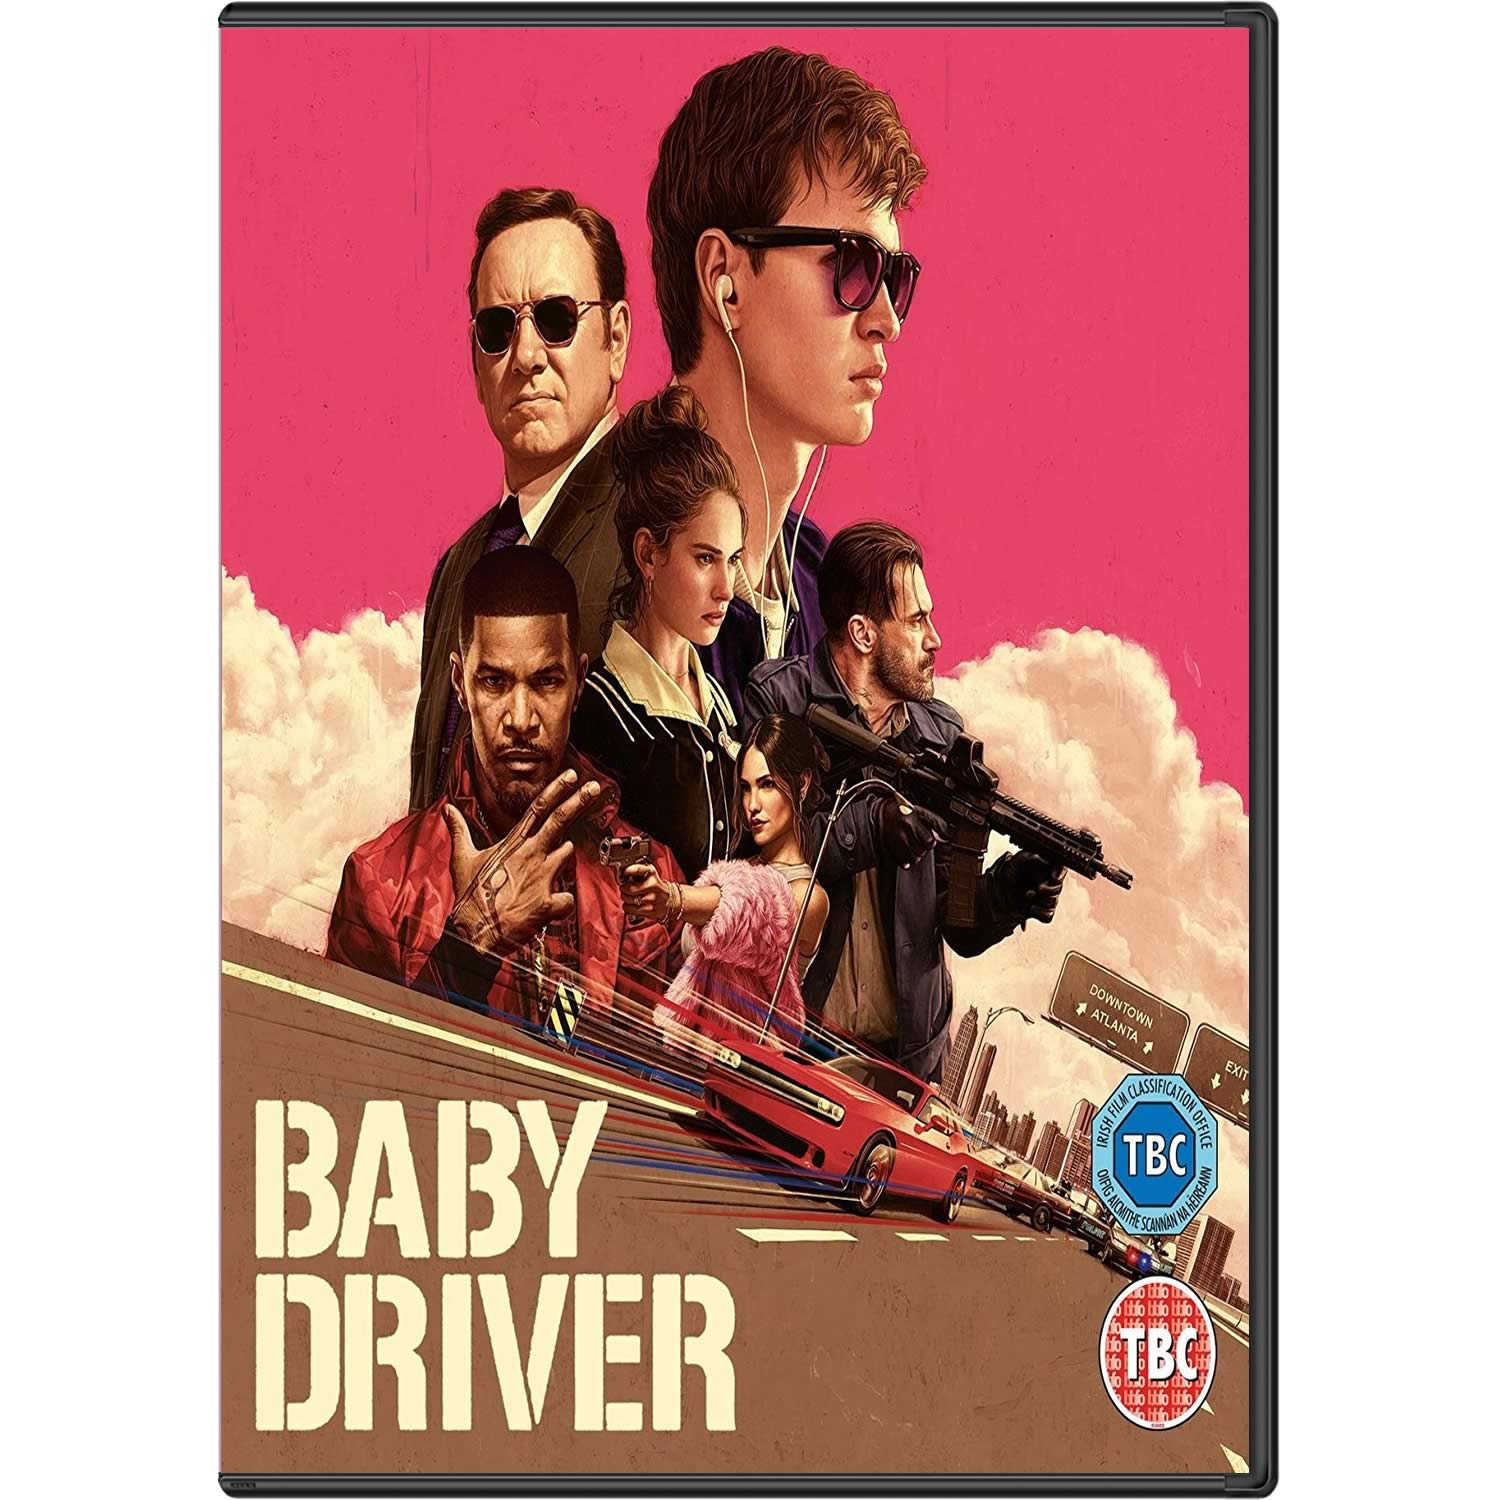 BABY DRIVER (DVD)